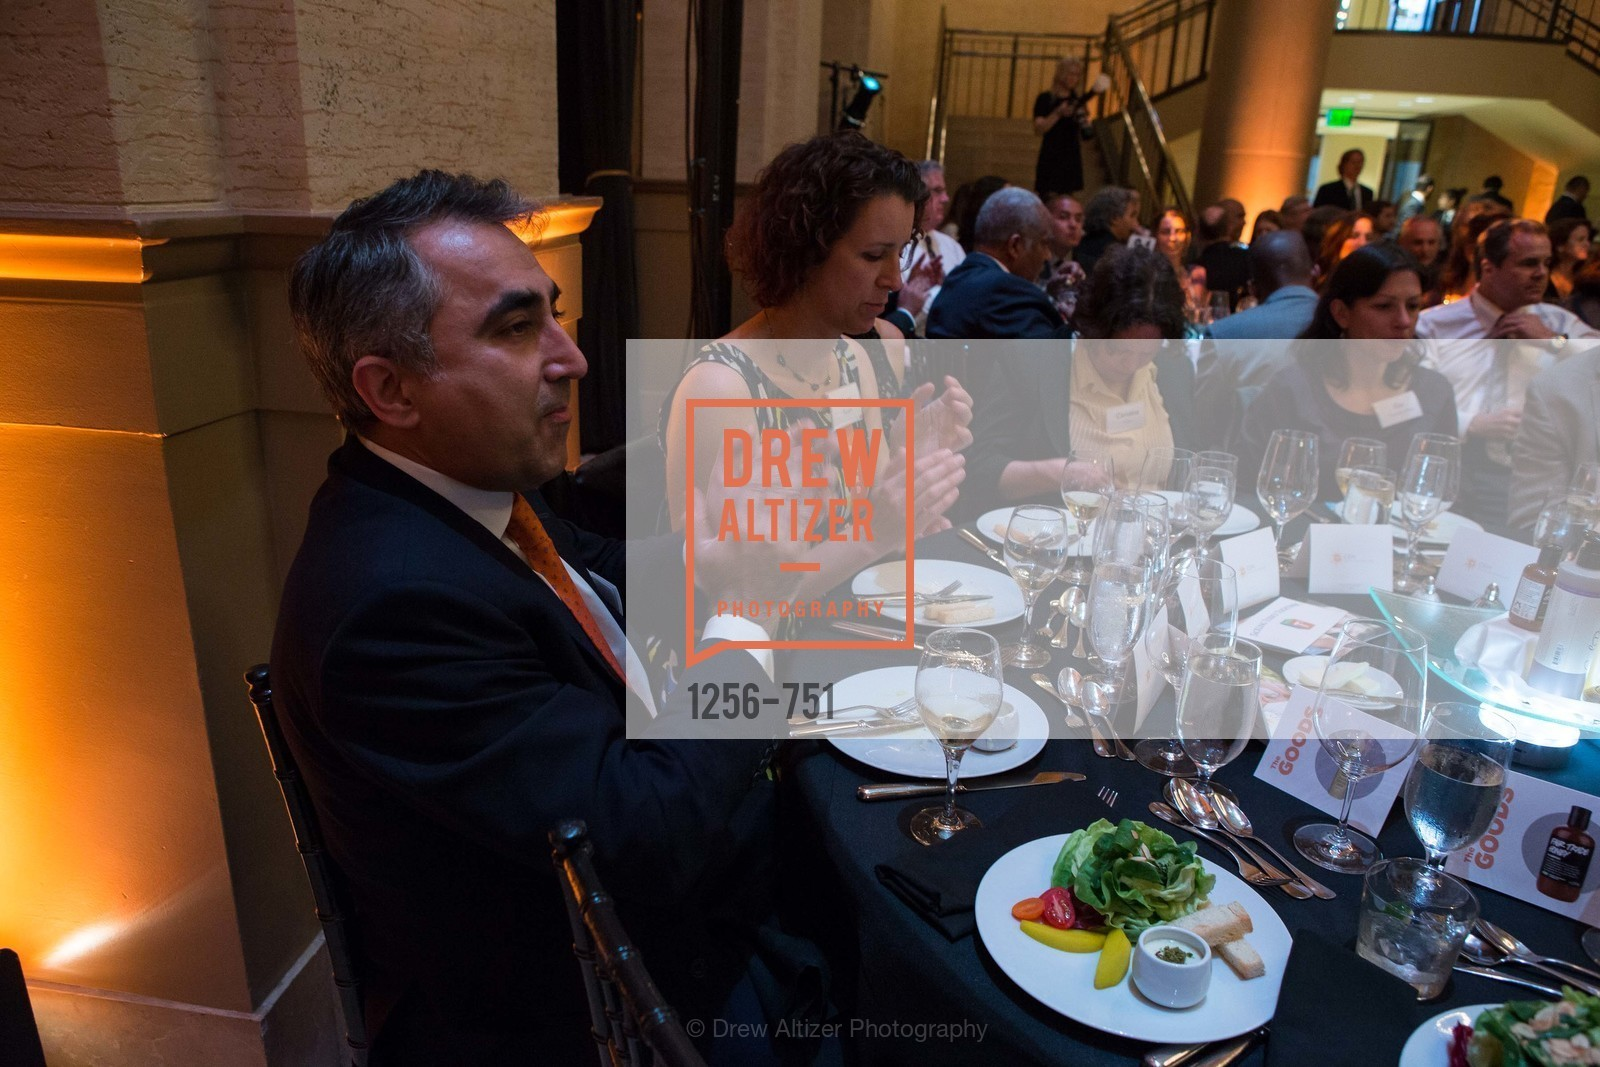 Extras, CENTER FOR ENVIRONMENTAL HEALTH (CEH) 2015 Gala, May 28th, 2015, Photo,Drew Altizer, Drew Altizer Photography, full-service agency, private events, San Francisco photographer, photographer california